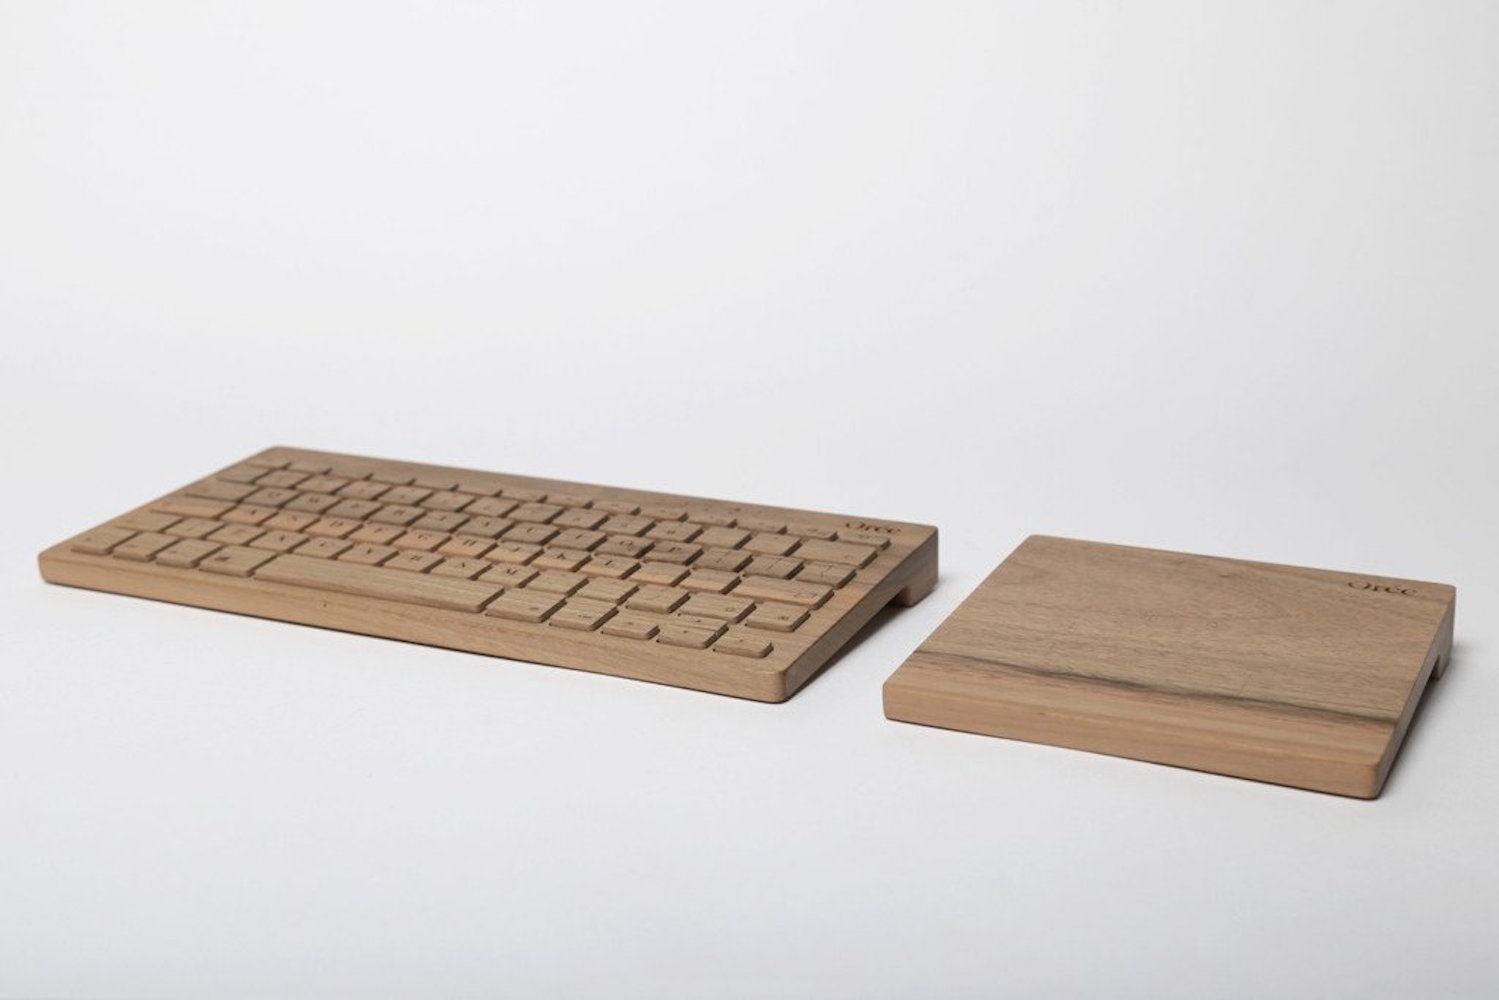 Board 2 by Orée – The Walnut Wood Wireless Keyboard